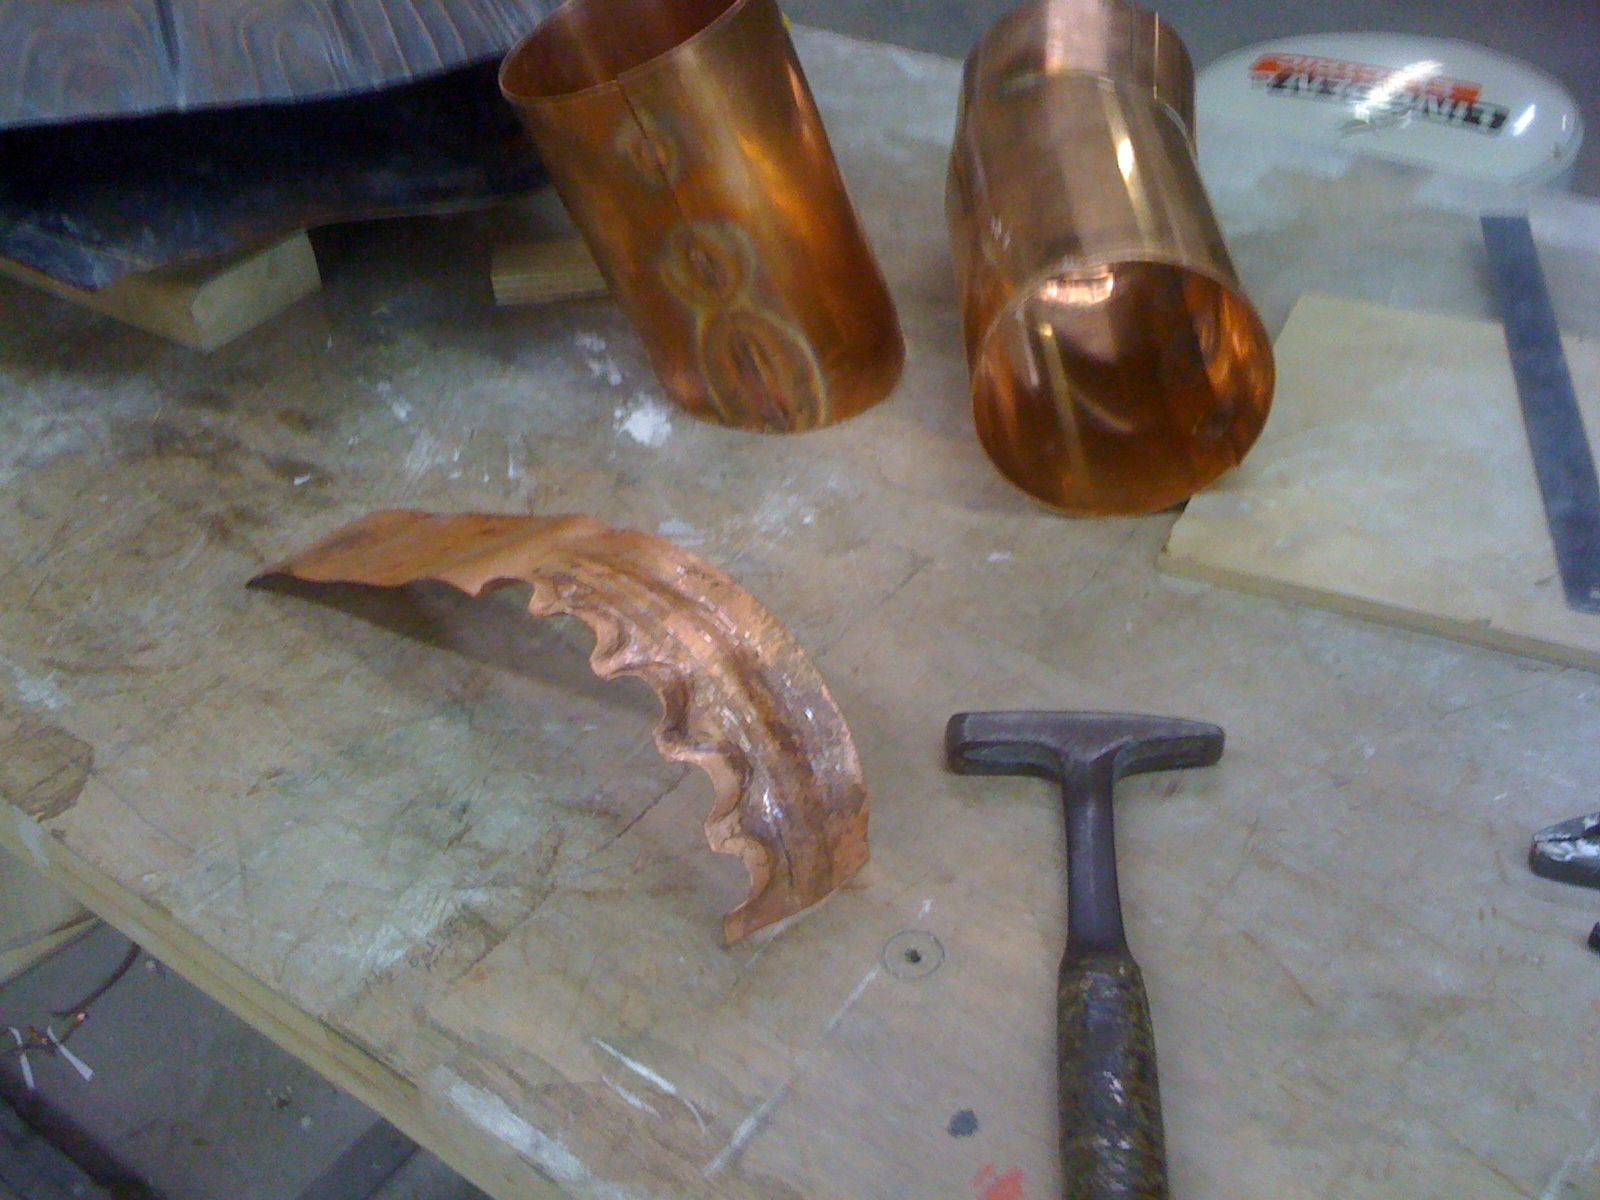 Repousse Sculpture Copper Forming And Fabrication Tutorial Repousse Copper Diy Sculpture